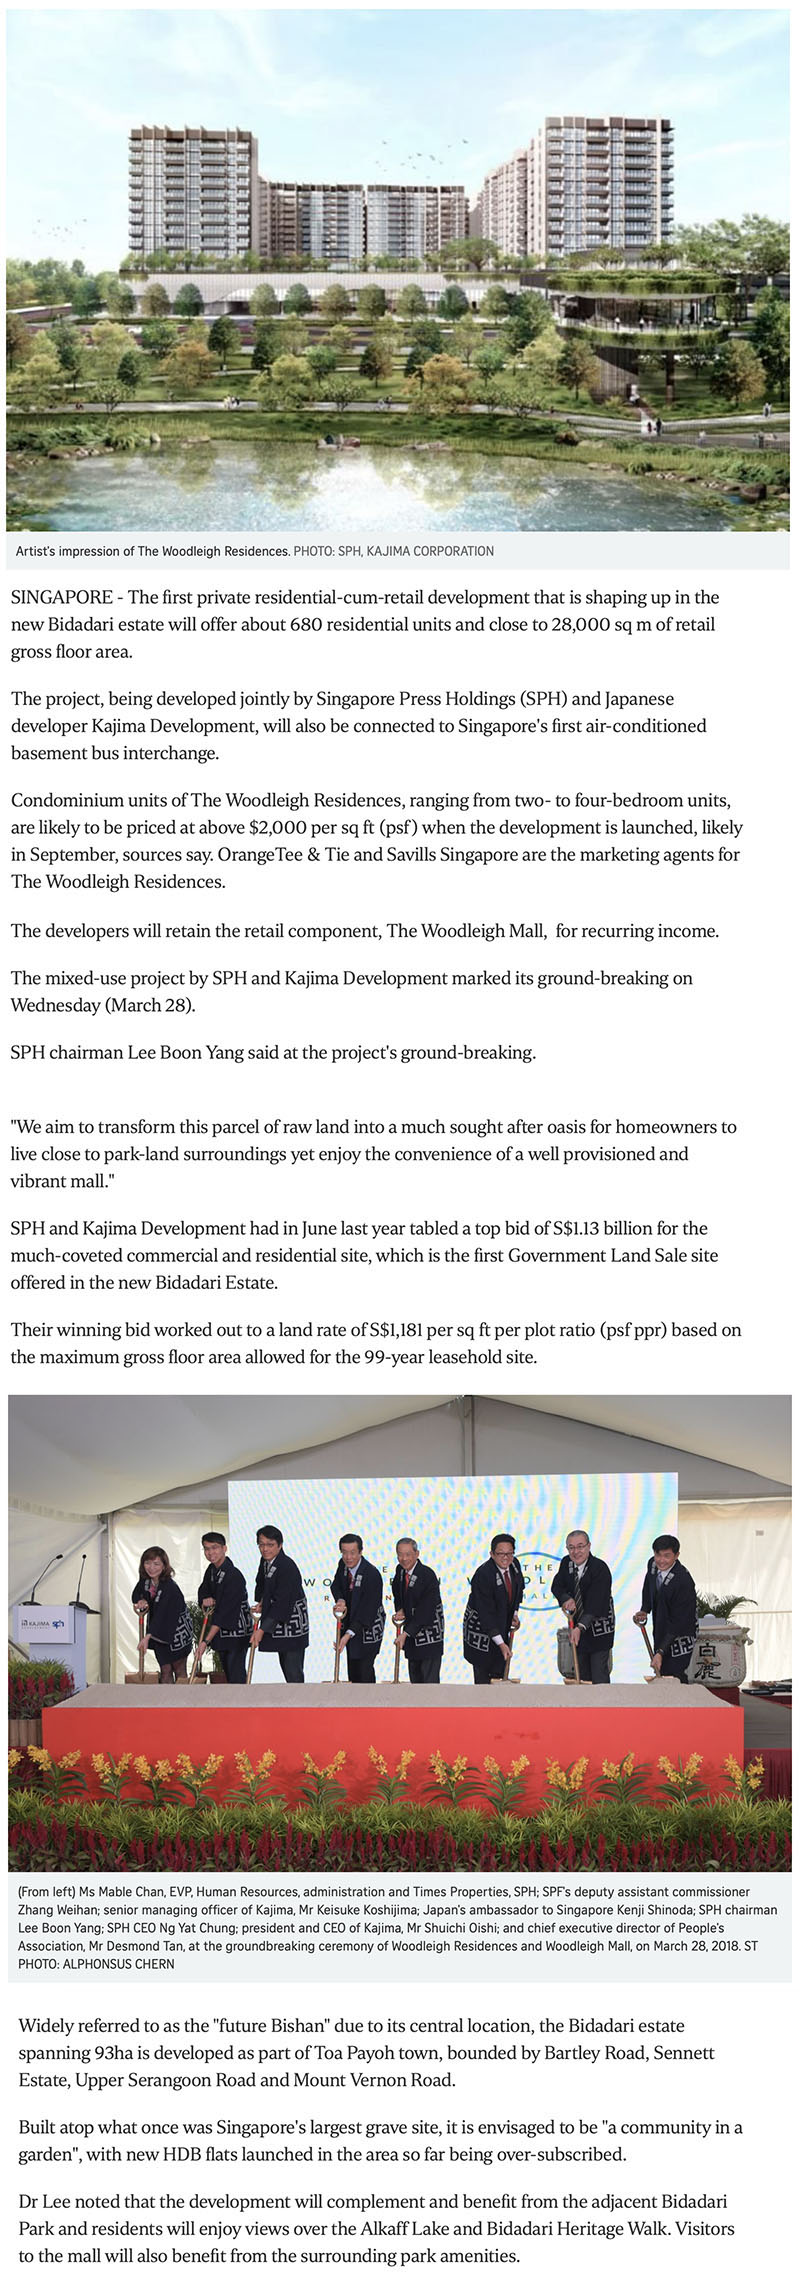 SPH Kajima break ground the woodleigh residences 1